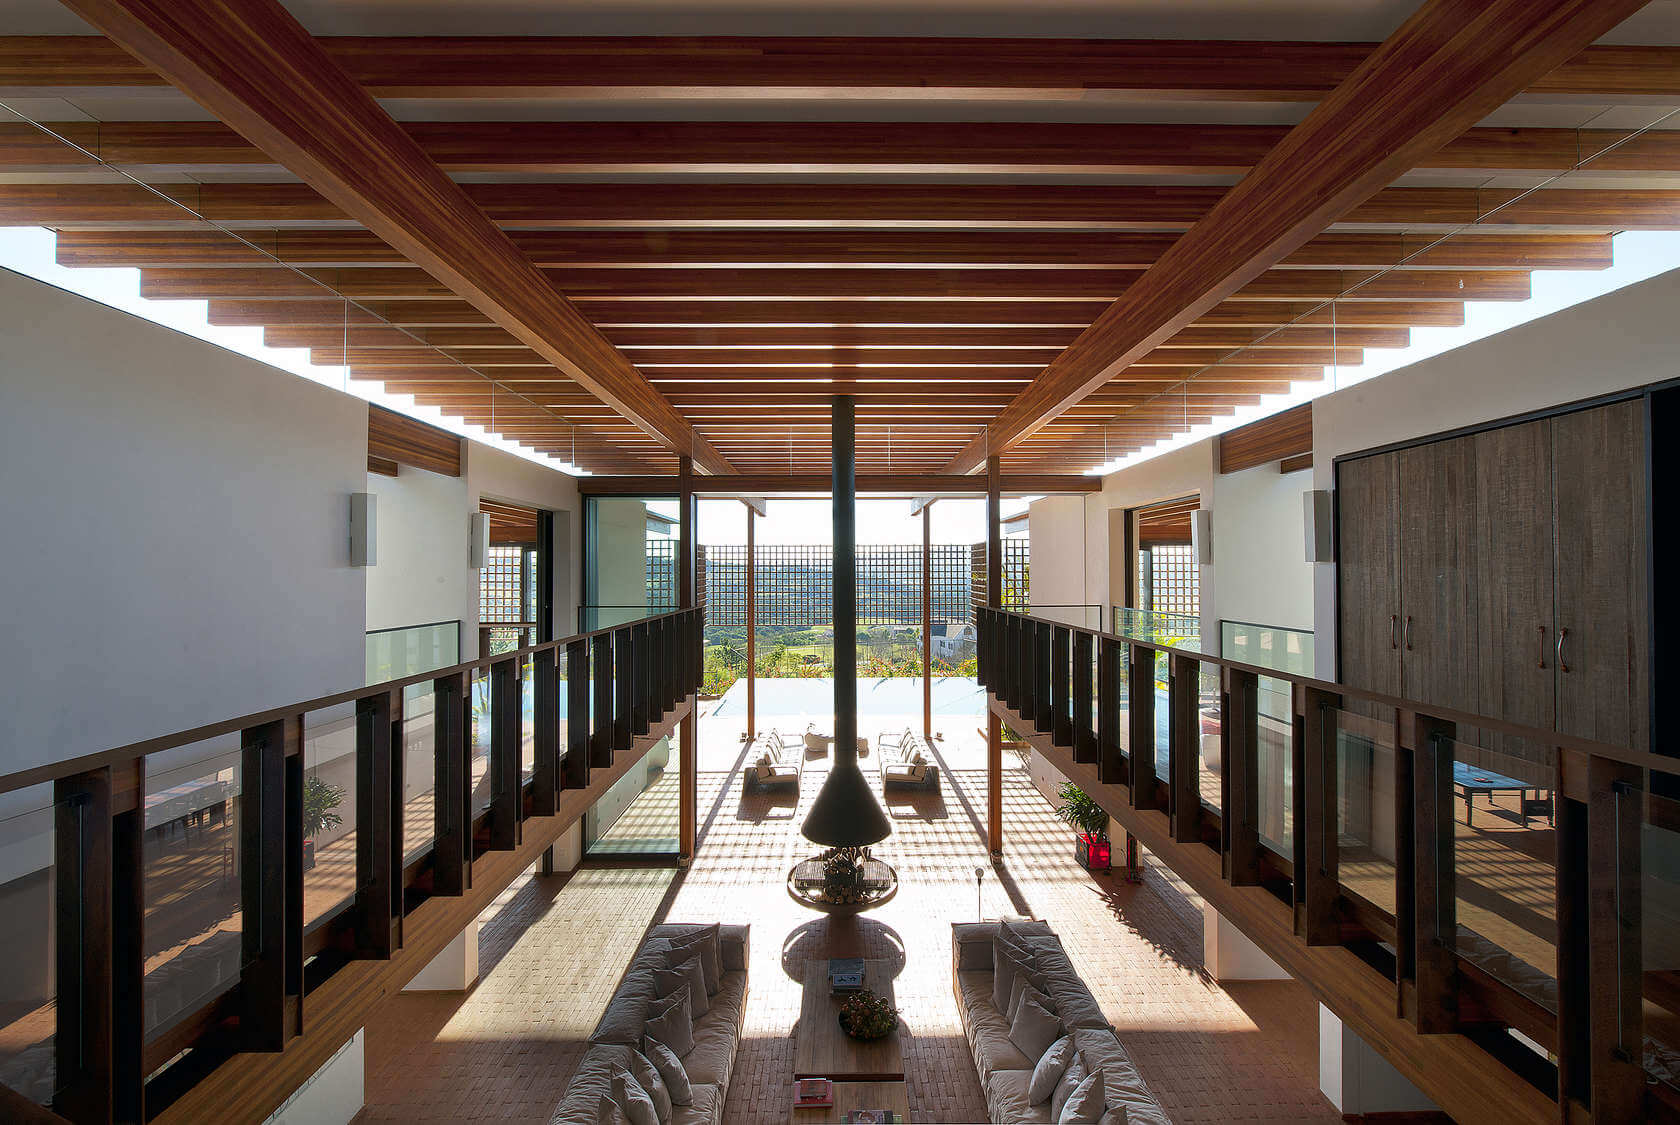 Quinta da baroneza by candida tabet arquitetura - Residence secondaire candida tabet architecture ...